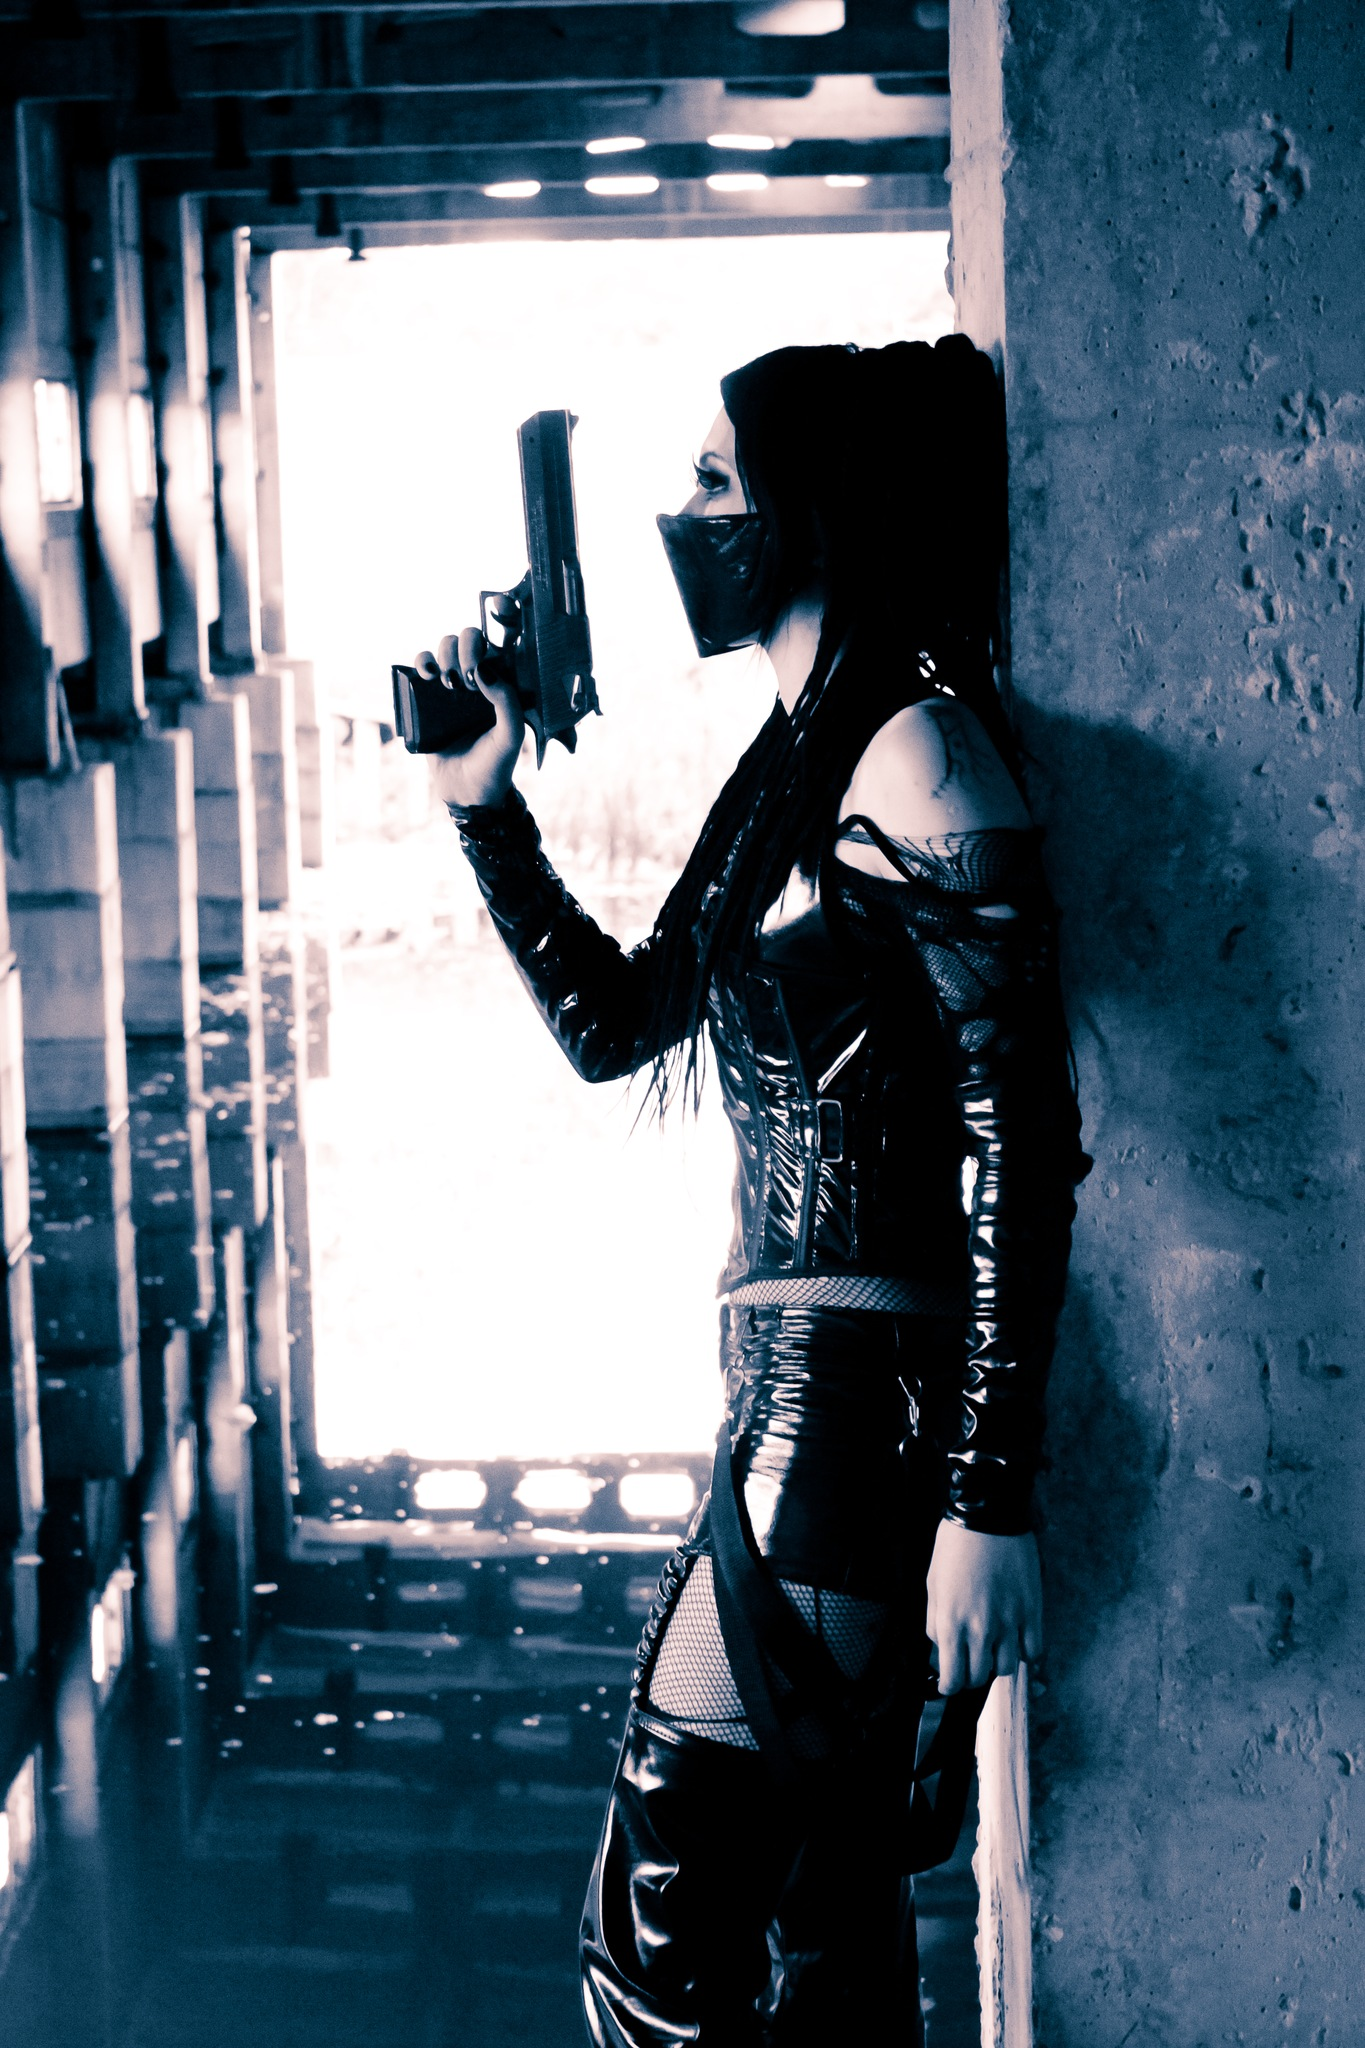 Many Styles Images Cybergoth Hd Wallpaper